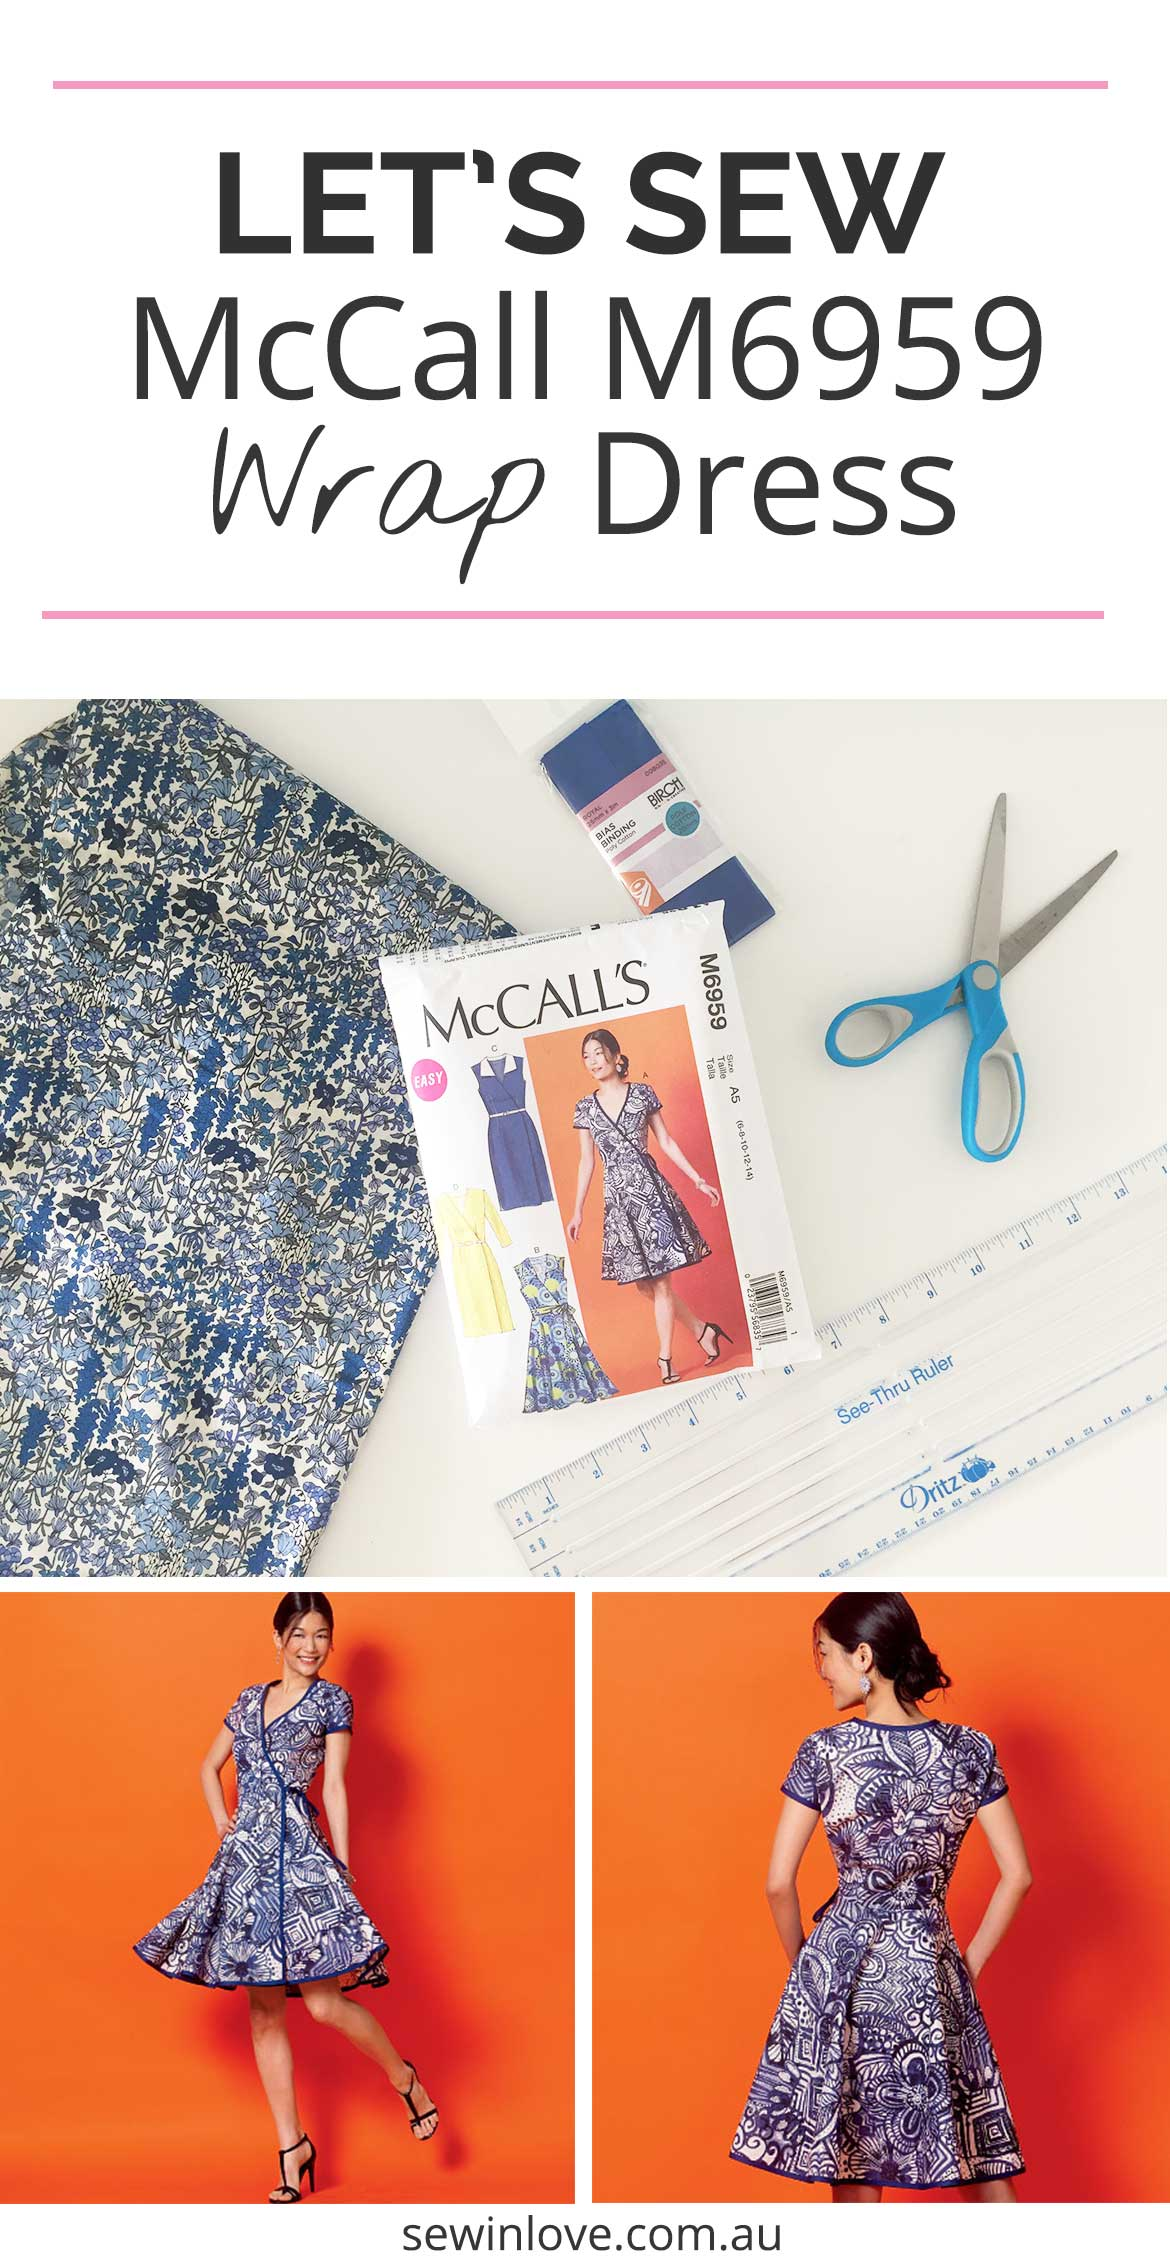 McCall Patterns M6959 Wrap Dress Sewing Pattern | Join me in a sew along to make this wrap dress with short sleeves and flared skirt. I'll be making my dress from this blue floral Japanese lawn fabric.